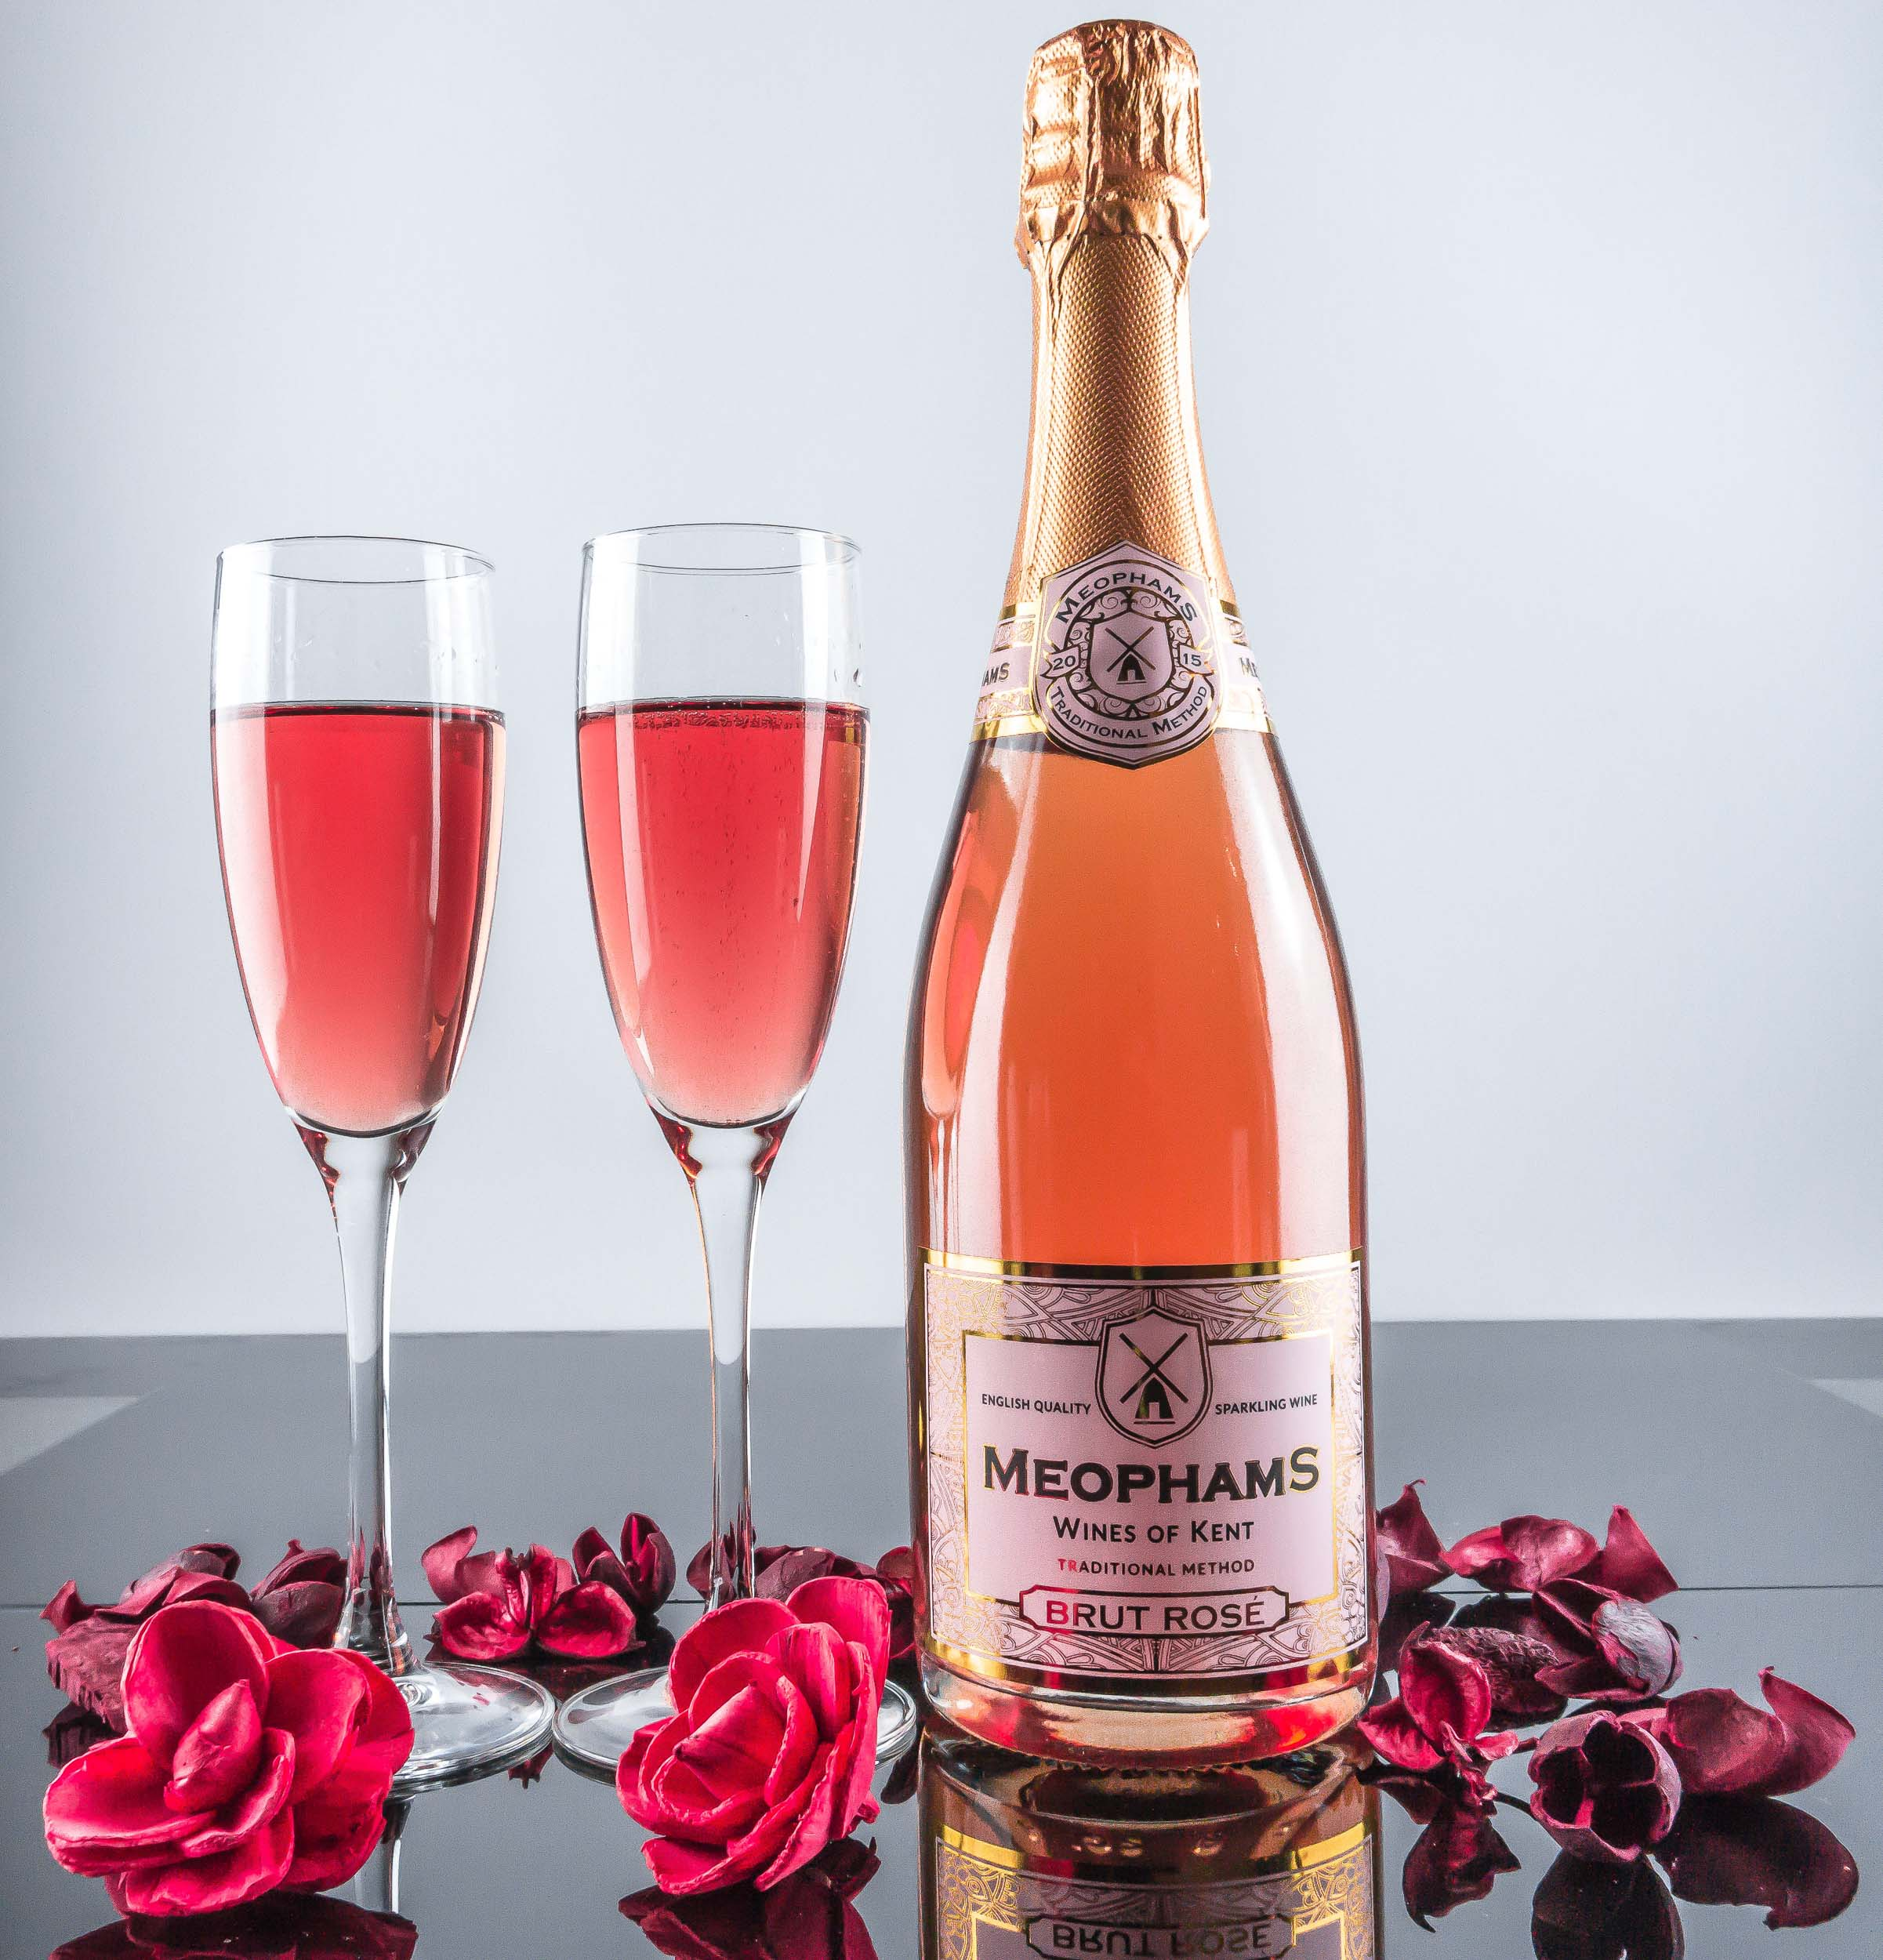 Meophams-Brut-Rose-English-Sparkling-Wine-2